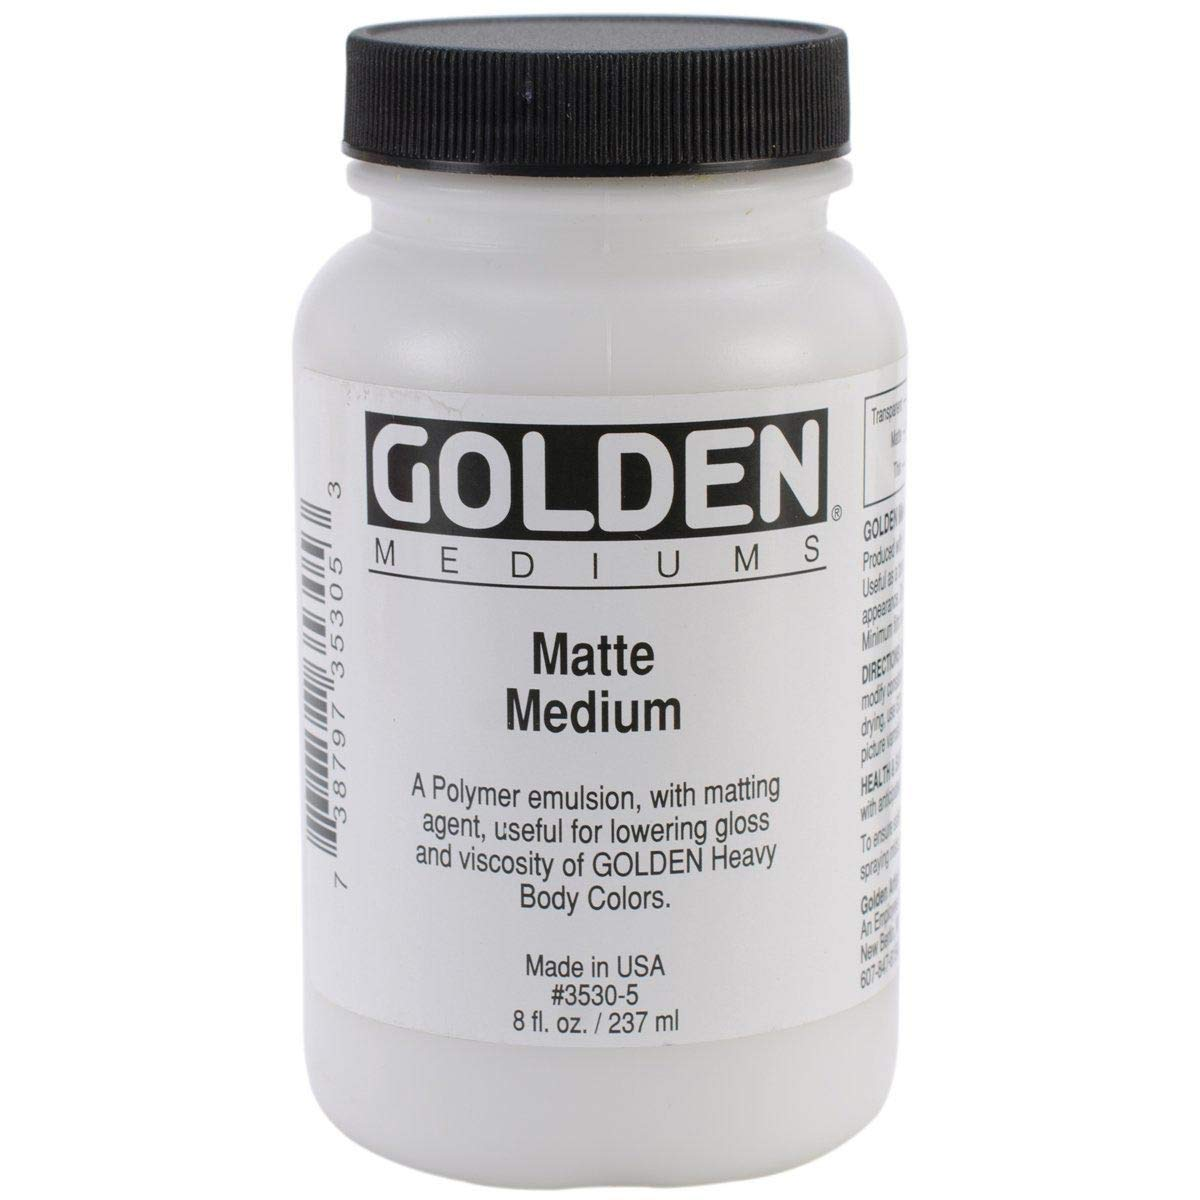 Golden Acryl Med 32 Oz Matte Medium by Golden